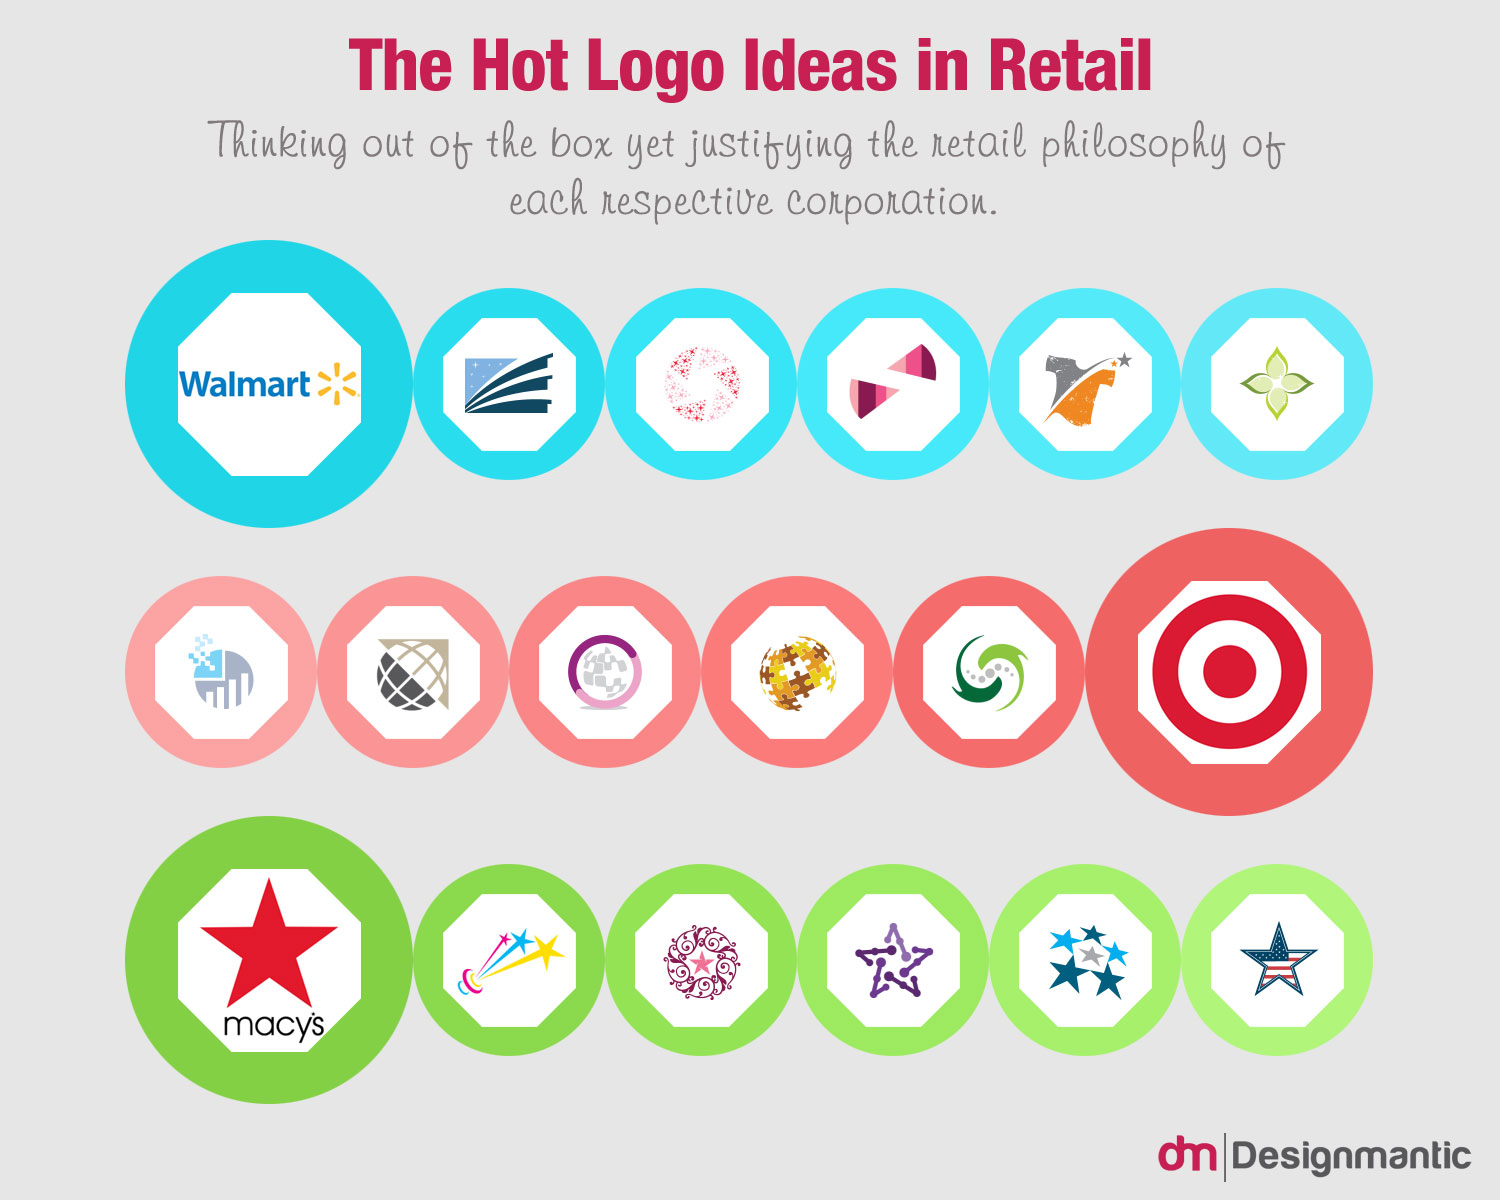 The Hot Logo Ideas in Retail